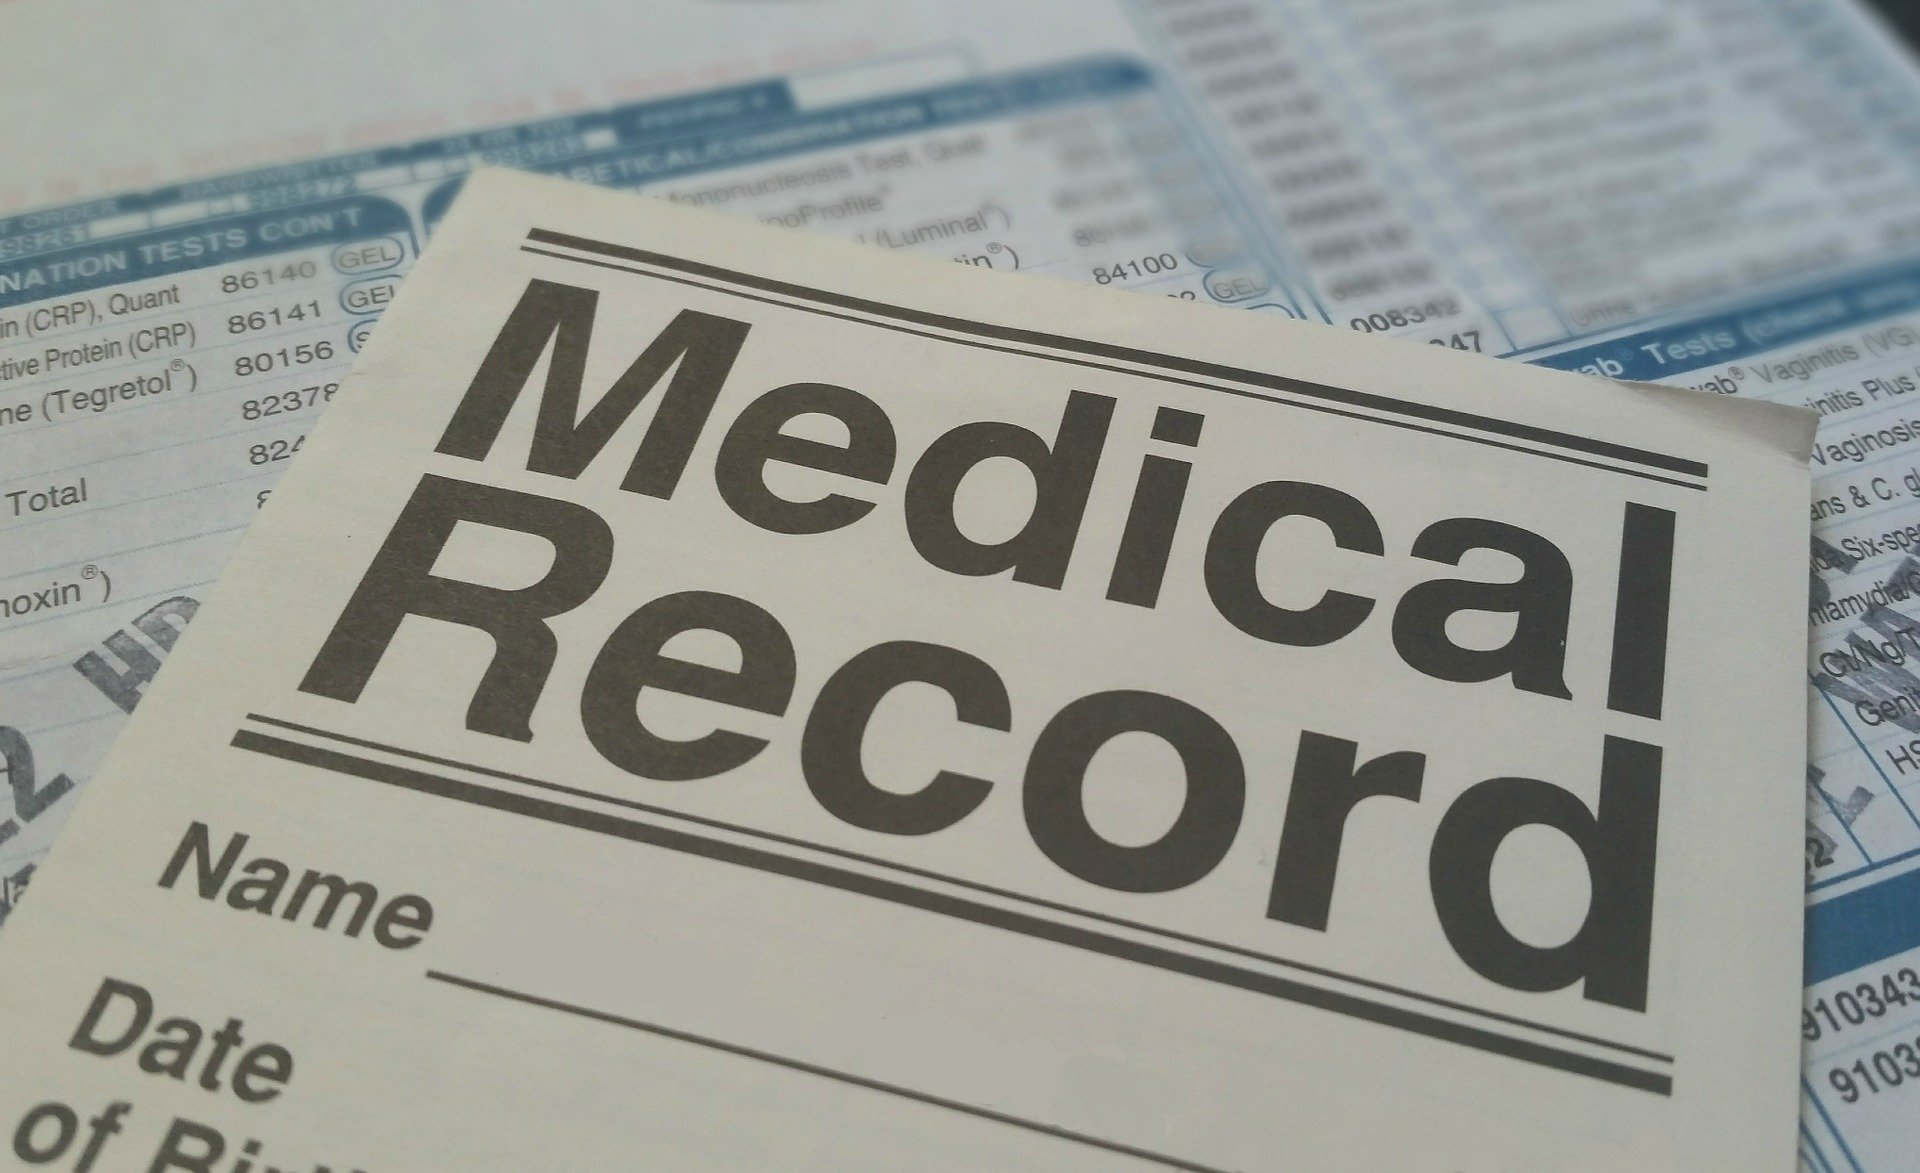 Words Matter Stigmatizing Language In Medical Records May Affect